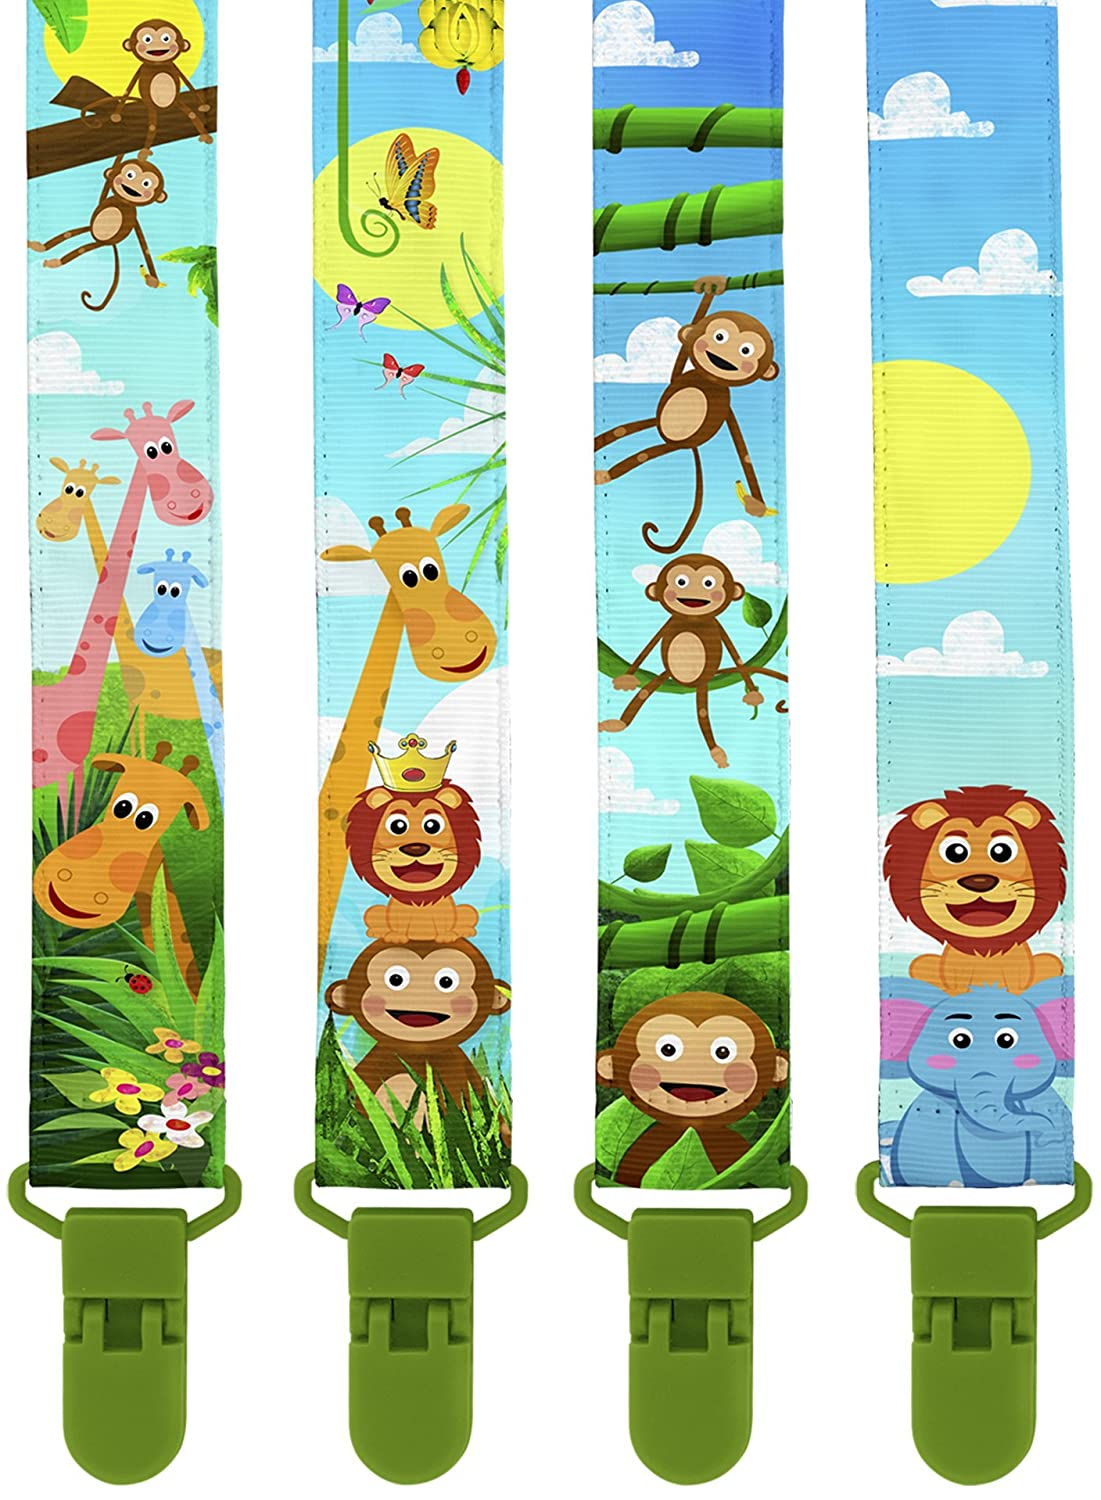 Premium Pacifier Clips by KiddosArt. Set Of 4, 2-Sided Of JUNGLE THEME Art, Stunningly Designed Pacifier Holder, Pacifier Leash, Baby Pacifier Clips for Girls and Boys. KIDDOS-PC-JUNGLE_THEME